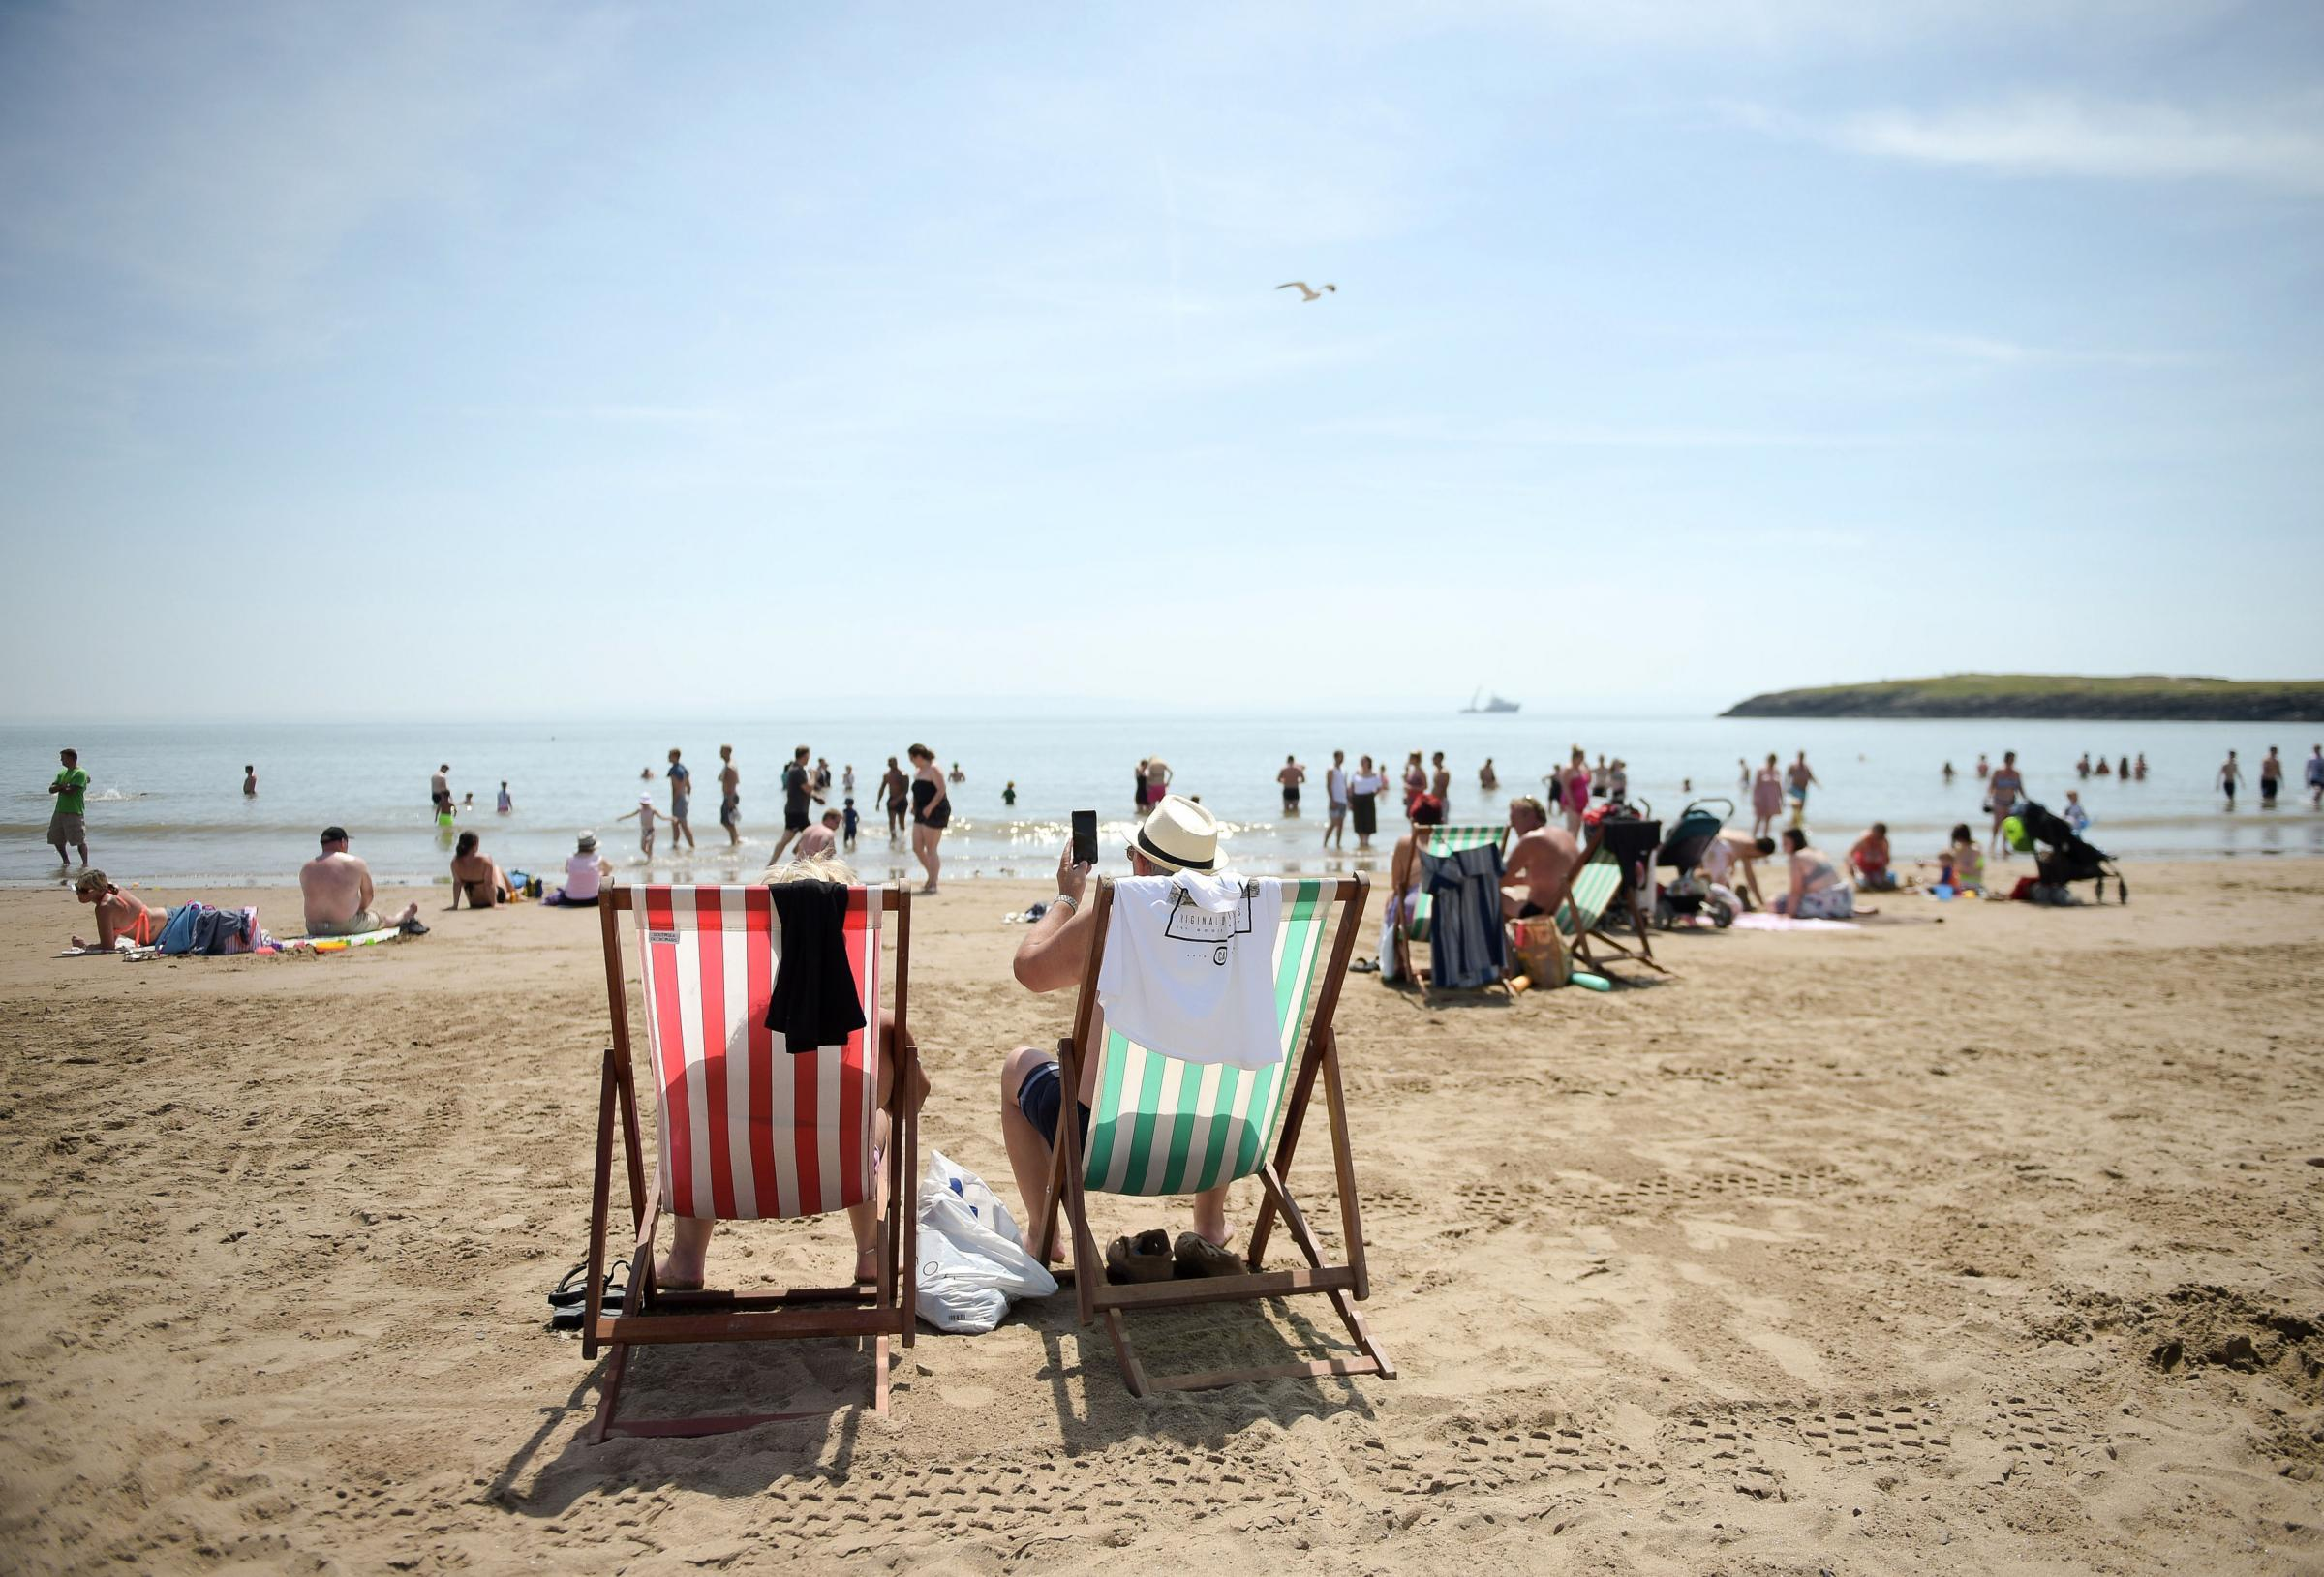 TAKE CARE: Hats on and suncream applied in the sunshine Photo: Ben Birchall/PA Wire